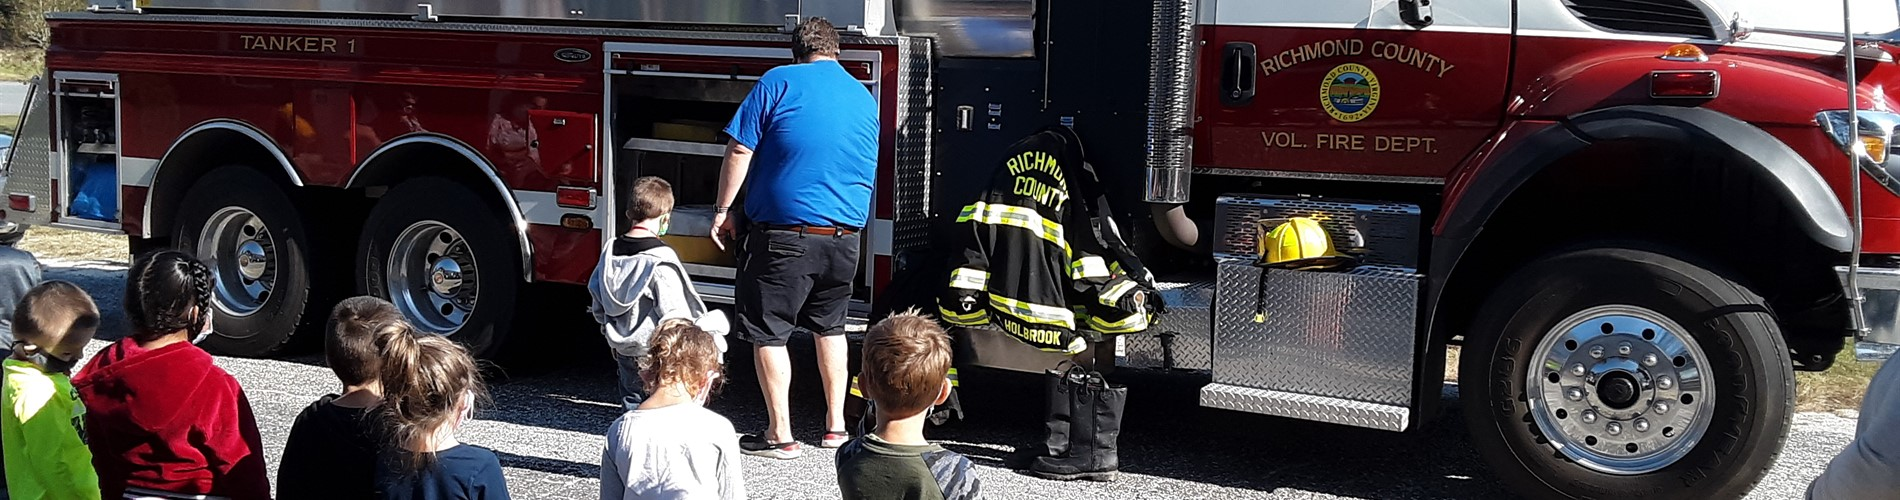 Mackey Thompson Learning Center students standing in front of a fire truck.